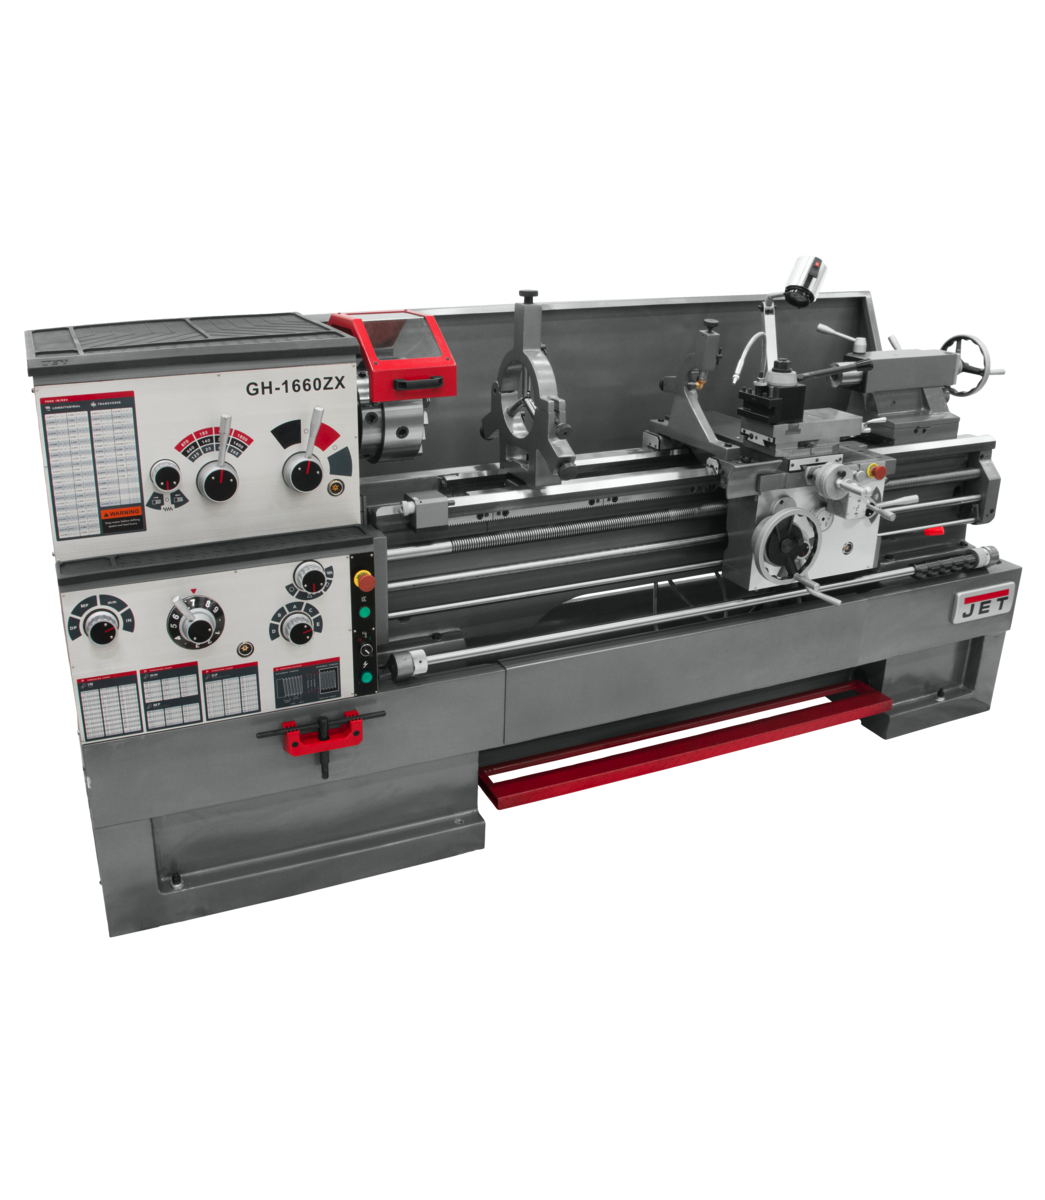 """GH-1660ZX, 3-1/8"""" Spindle Bore Geared Head Lathe"""